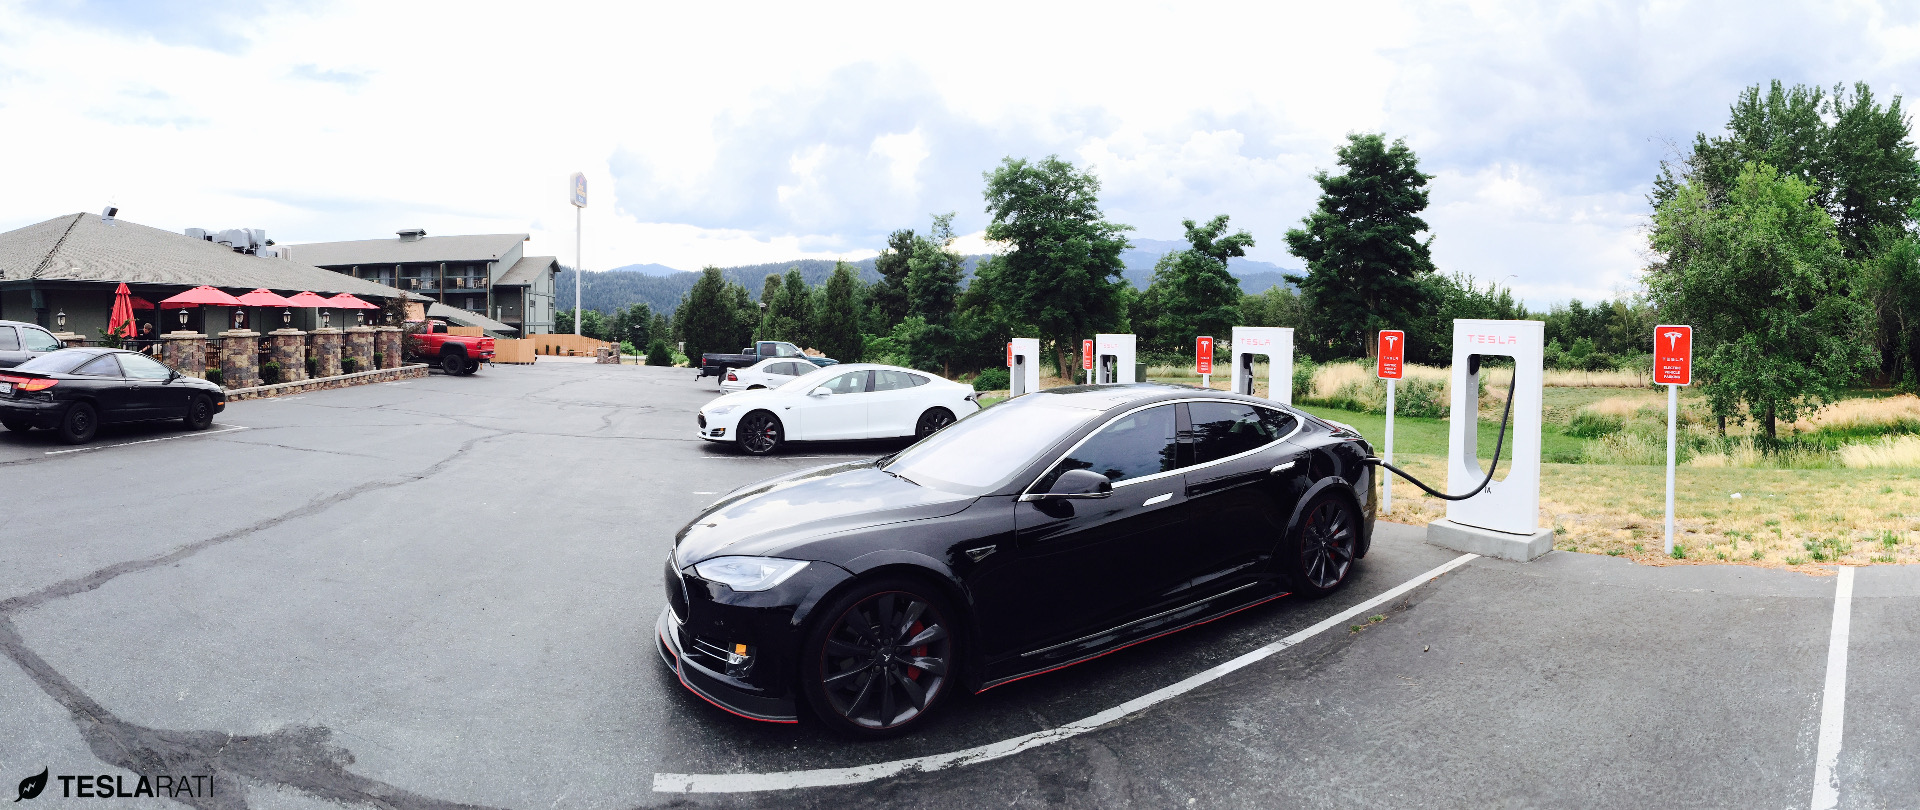 Ever Since The First Announcement Of Tesla 691 Hp Dual Motor Model S P85d Later Followed By A 762 Ludicrous Mode P90d Its Horse Rating Has